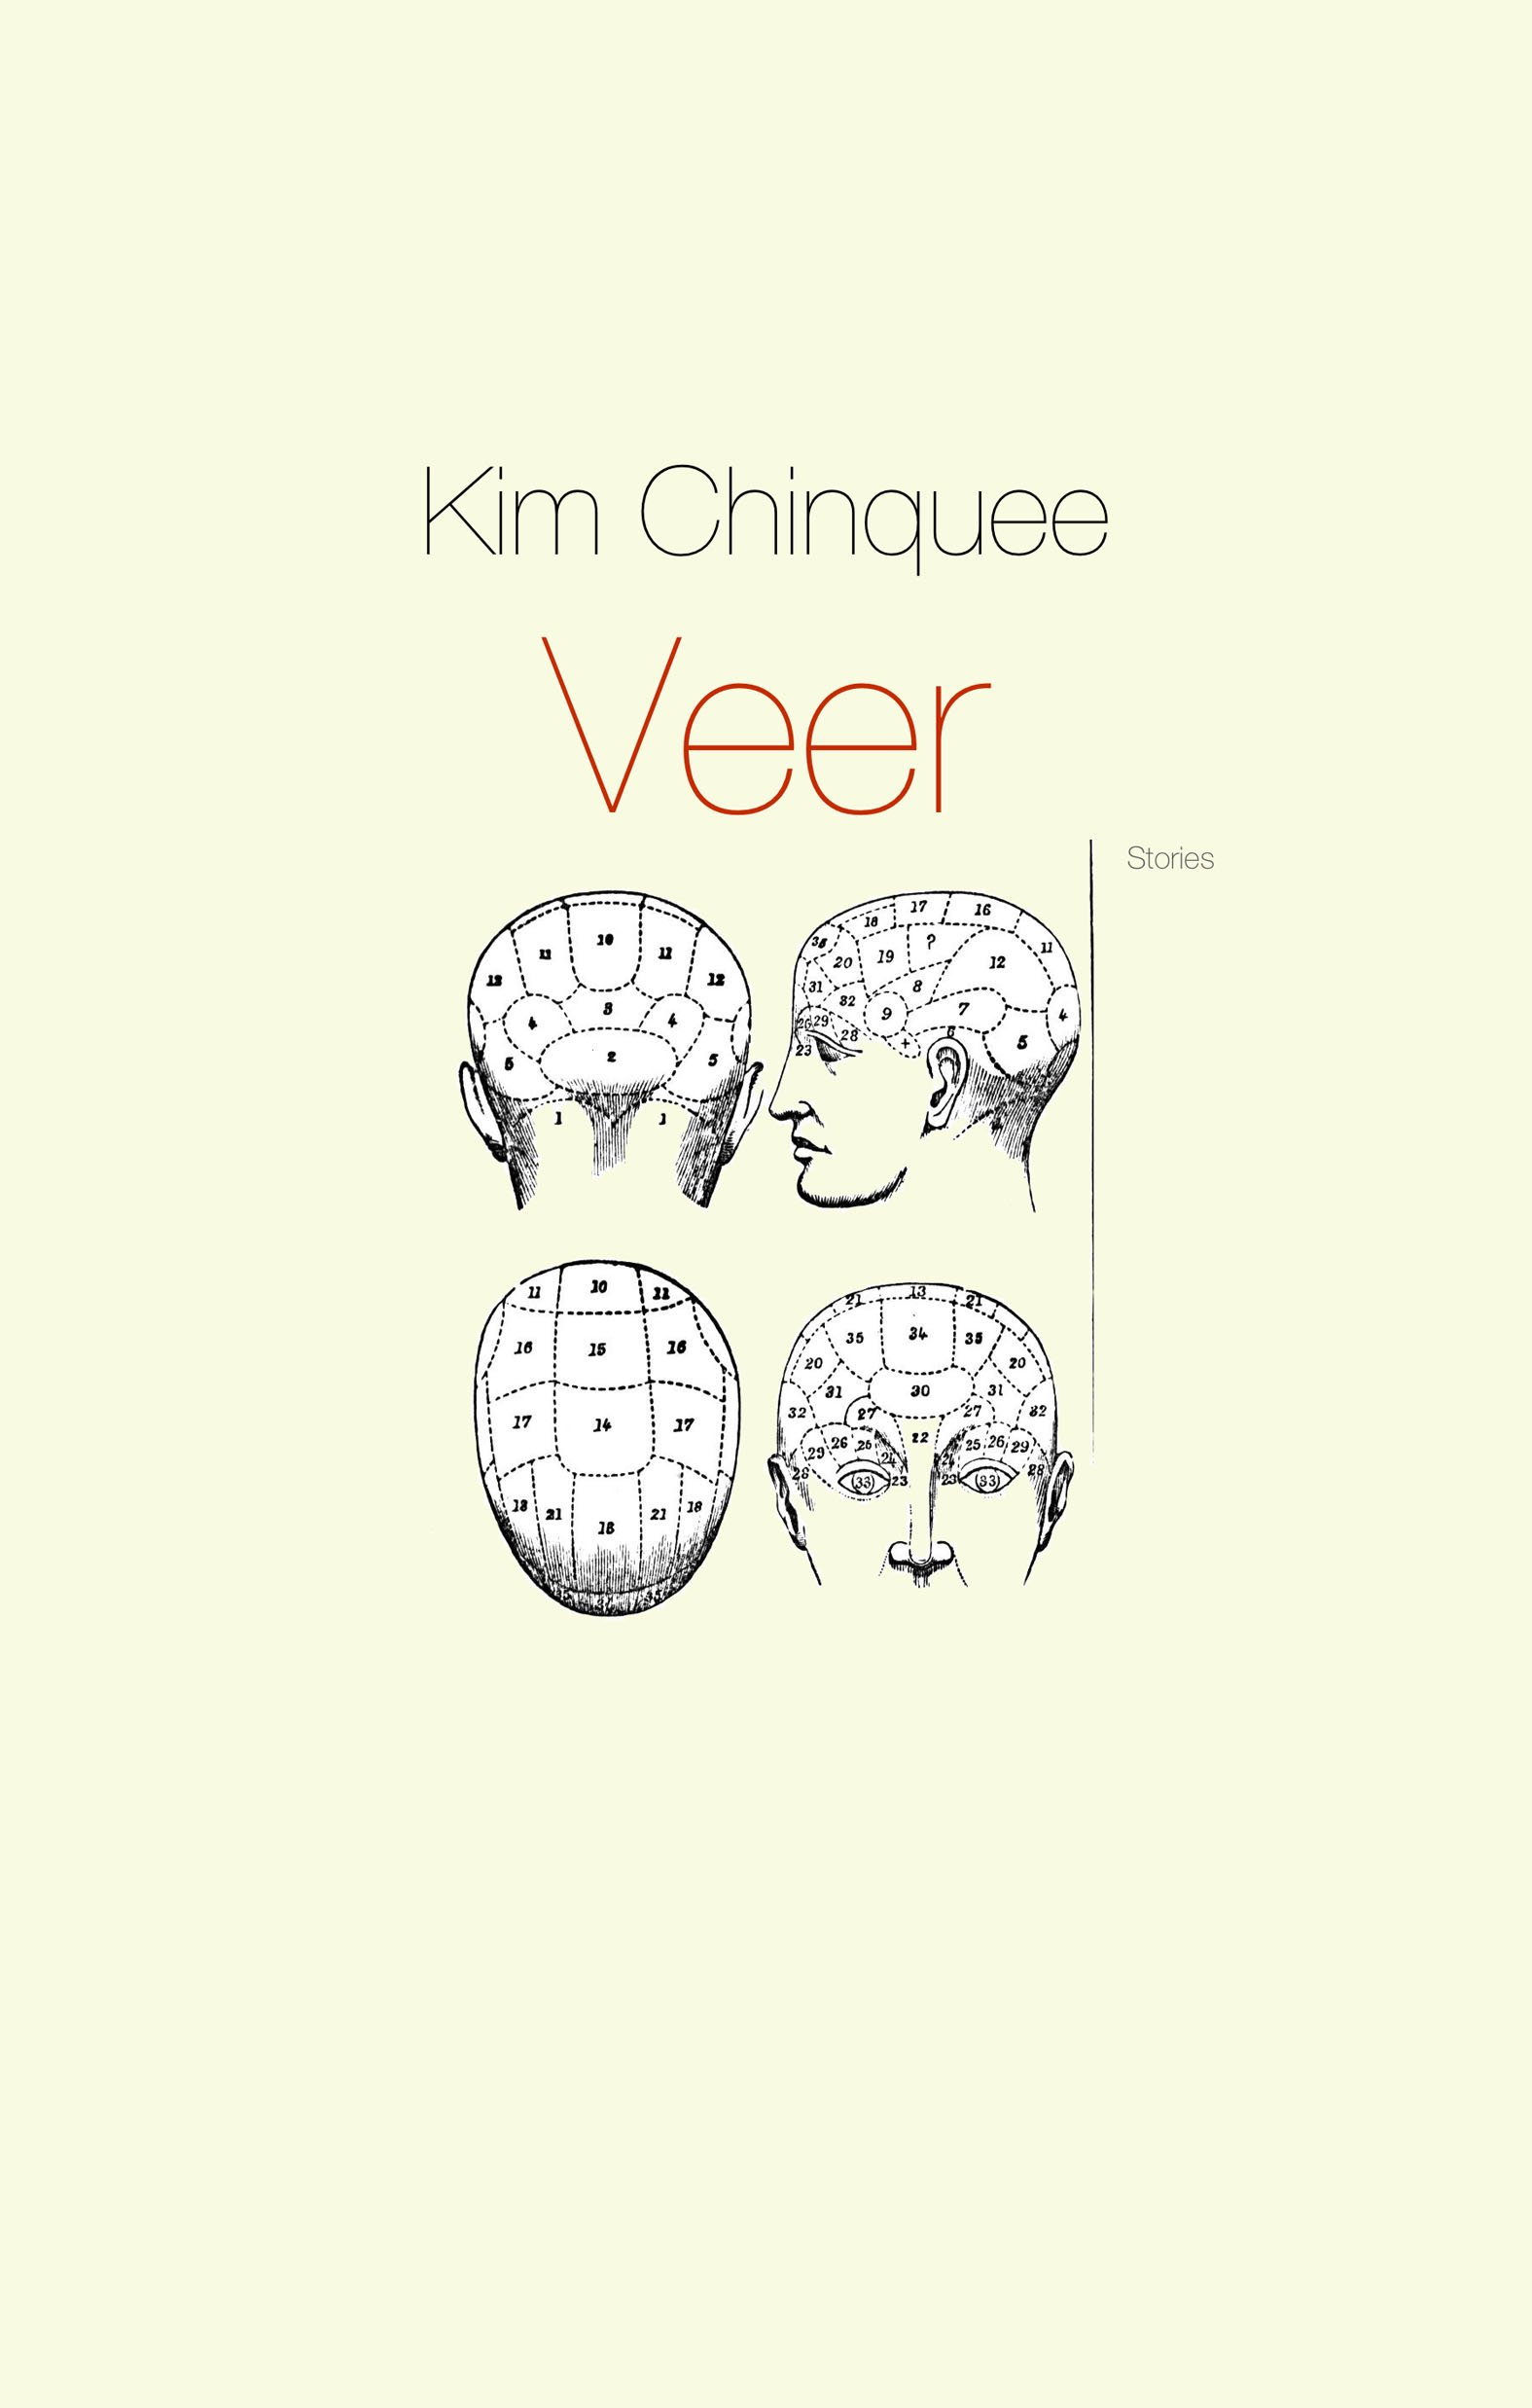 Veer kim chinquee 9780998546322 amazon books fandeluxe Choice Image